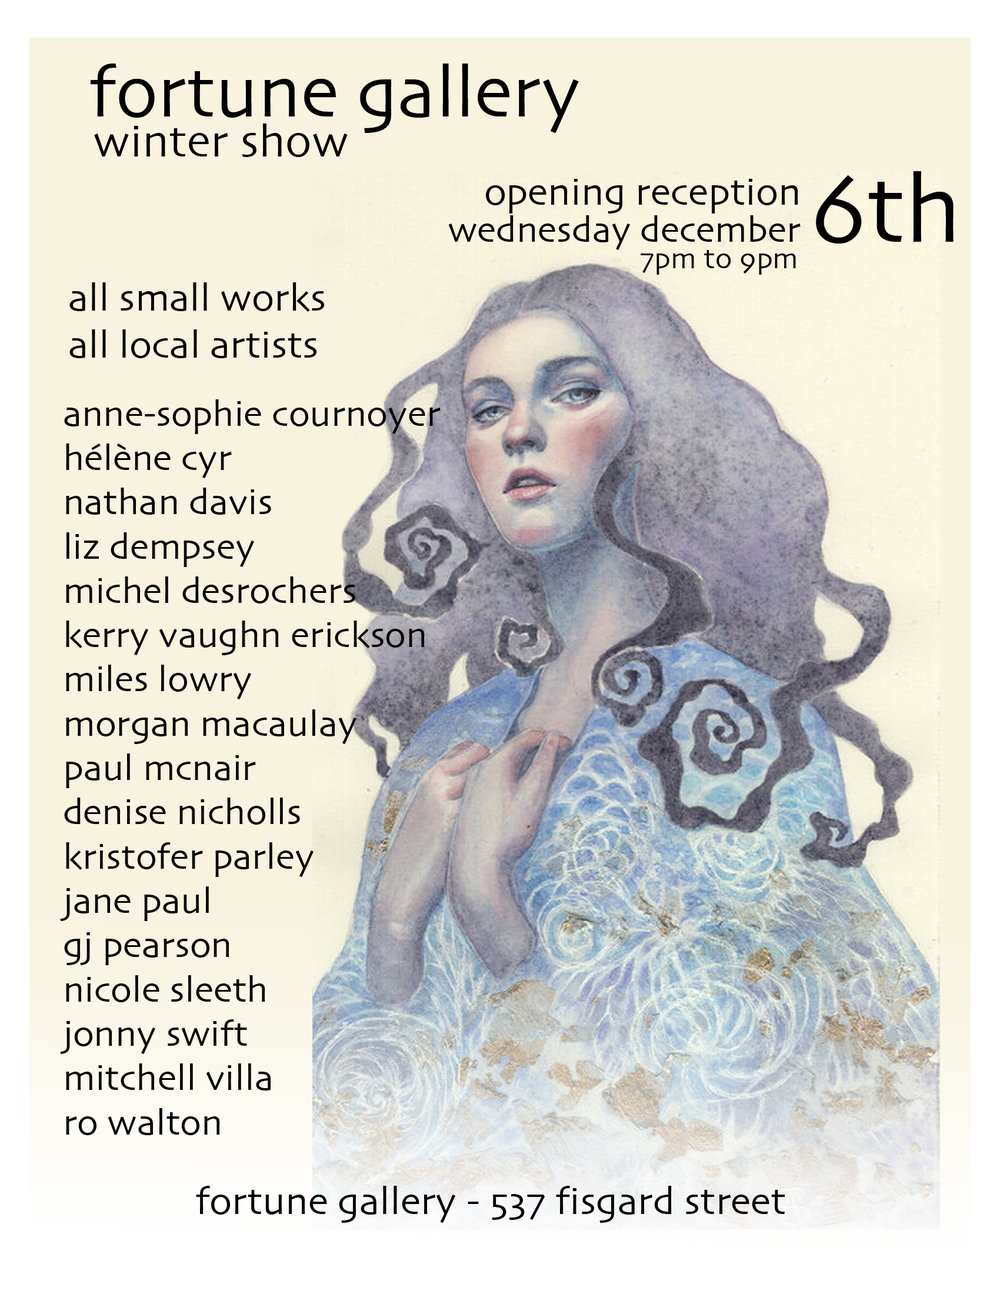 Winter Show 2017 -Various Artists - December 6th - December 24th 2017